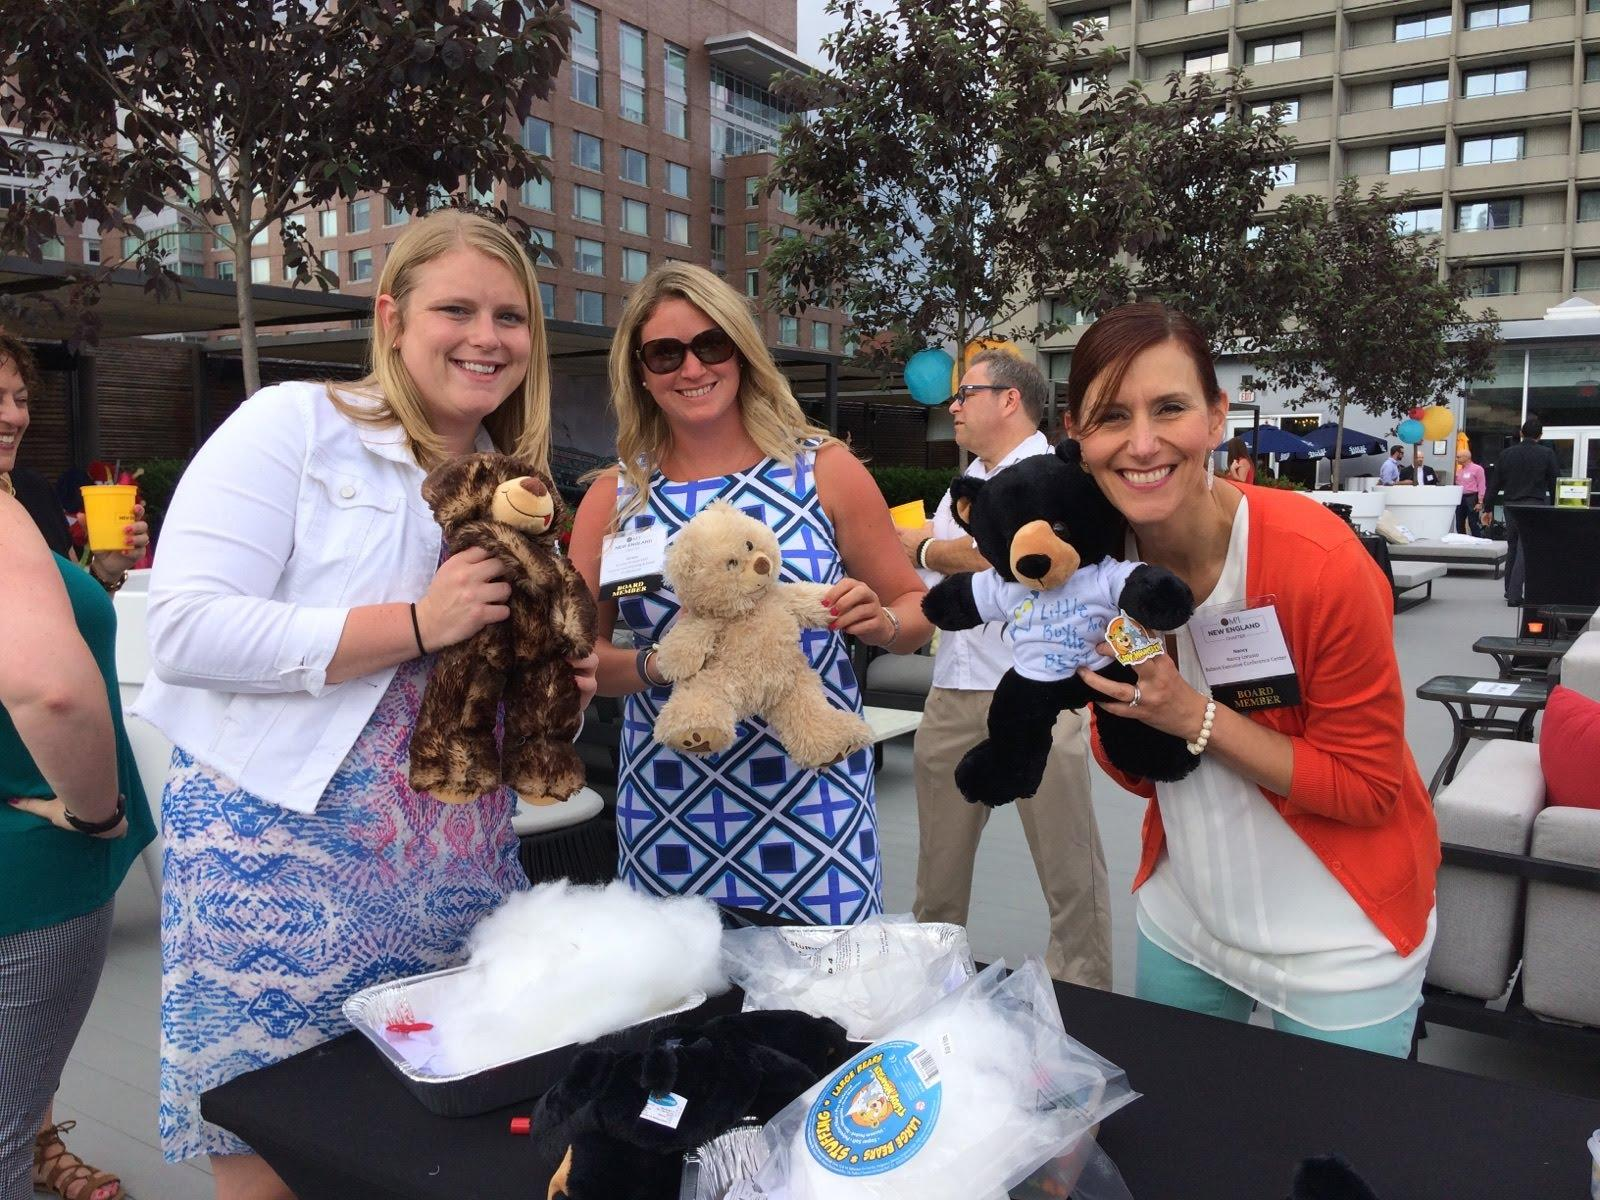 Employees making stuffed animals for children